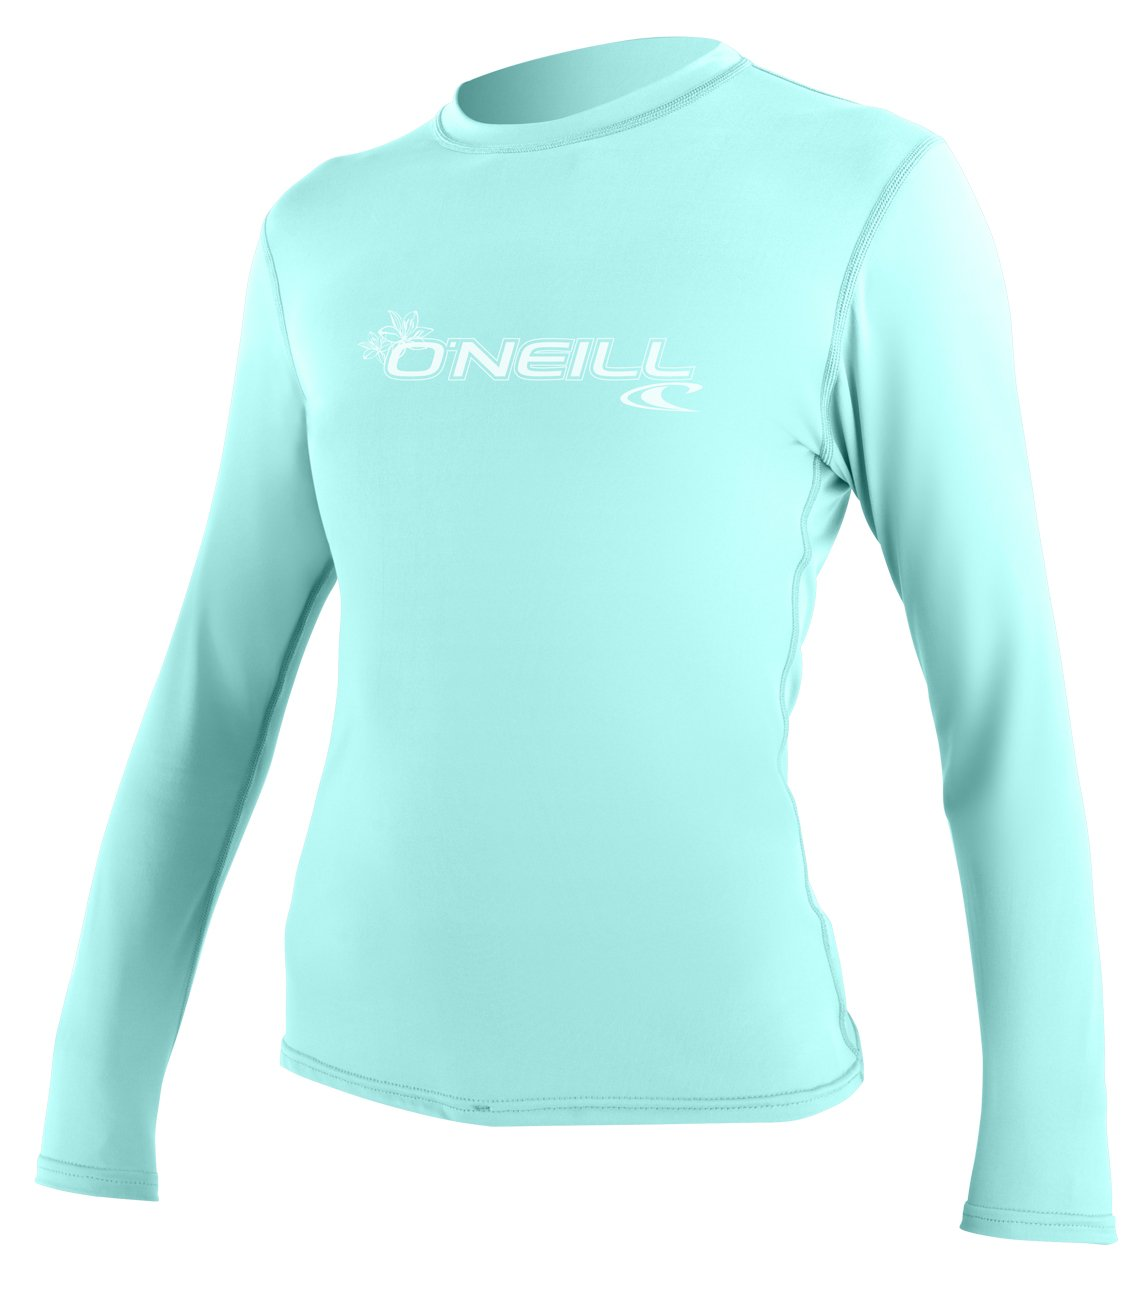 O'Neill Wetsuits Women's UV Sun Protection Basic